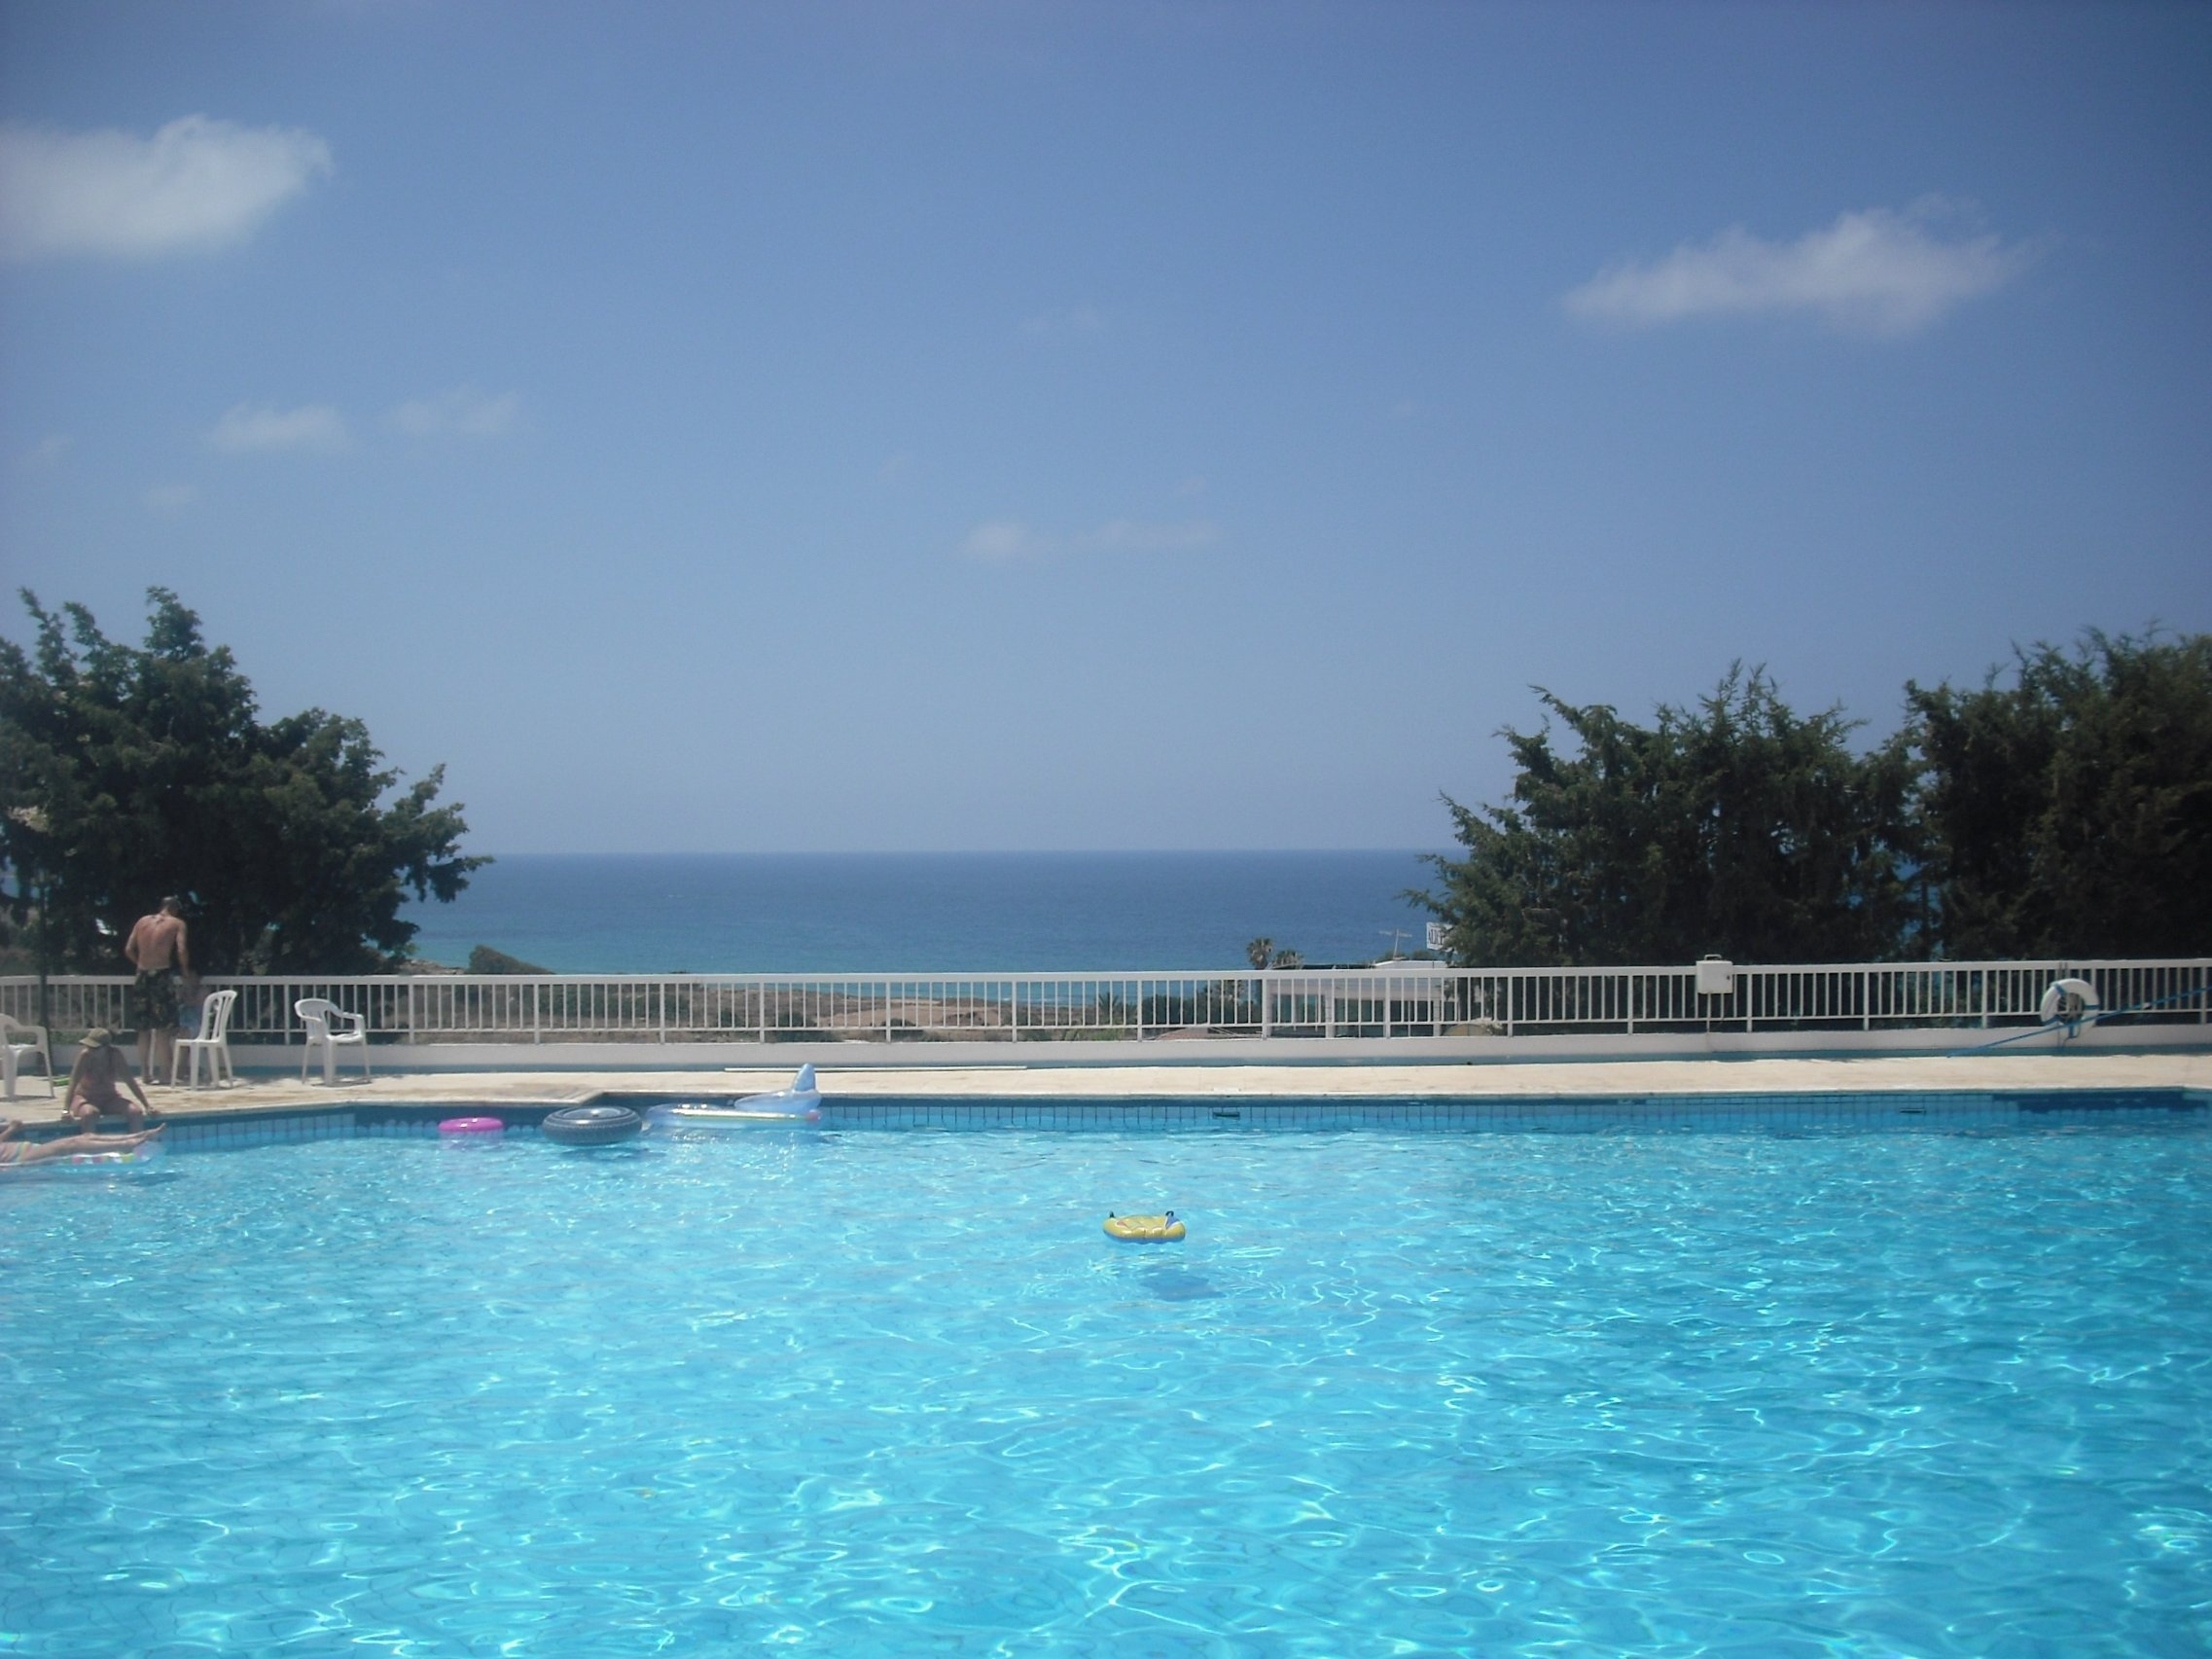 Outdoor pool in Cyprus